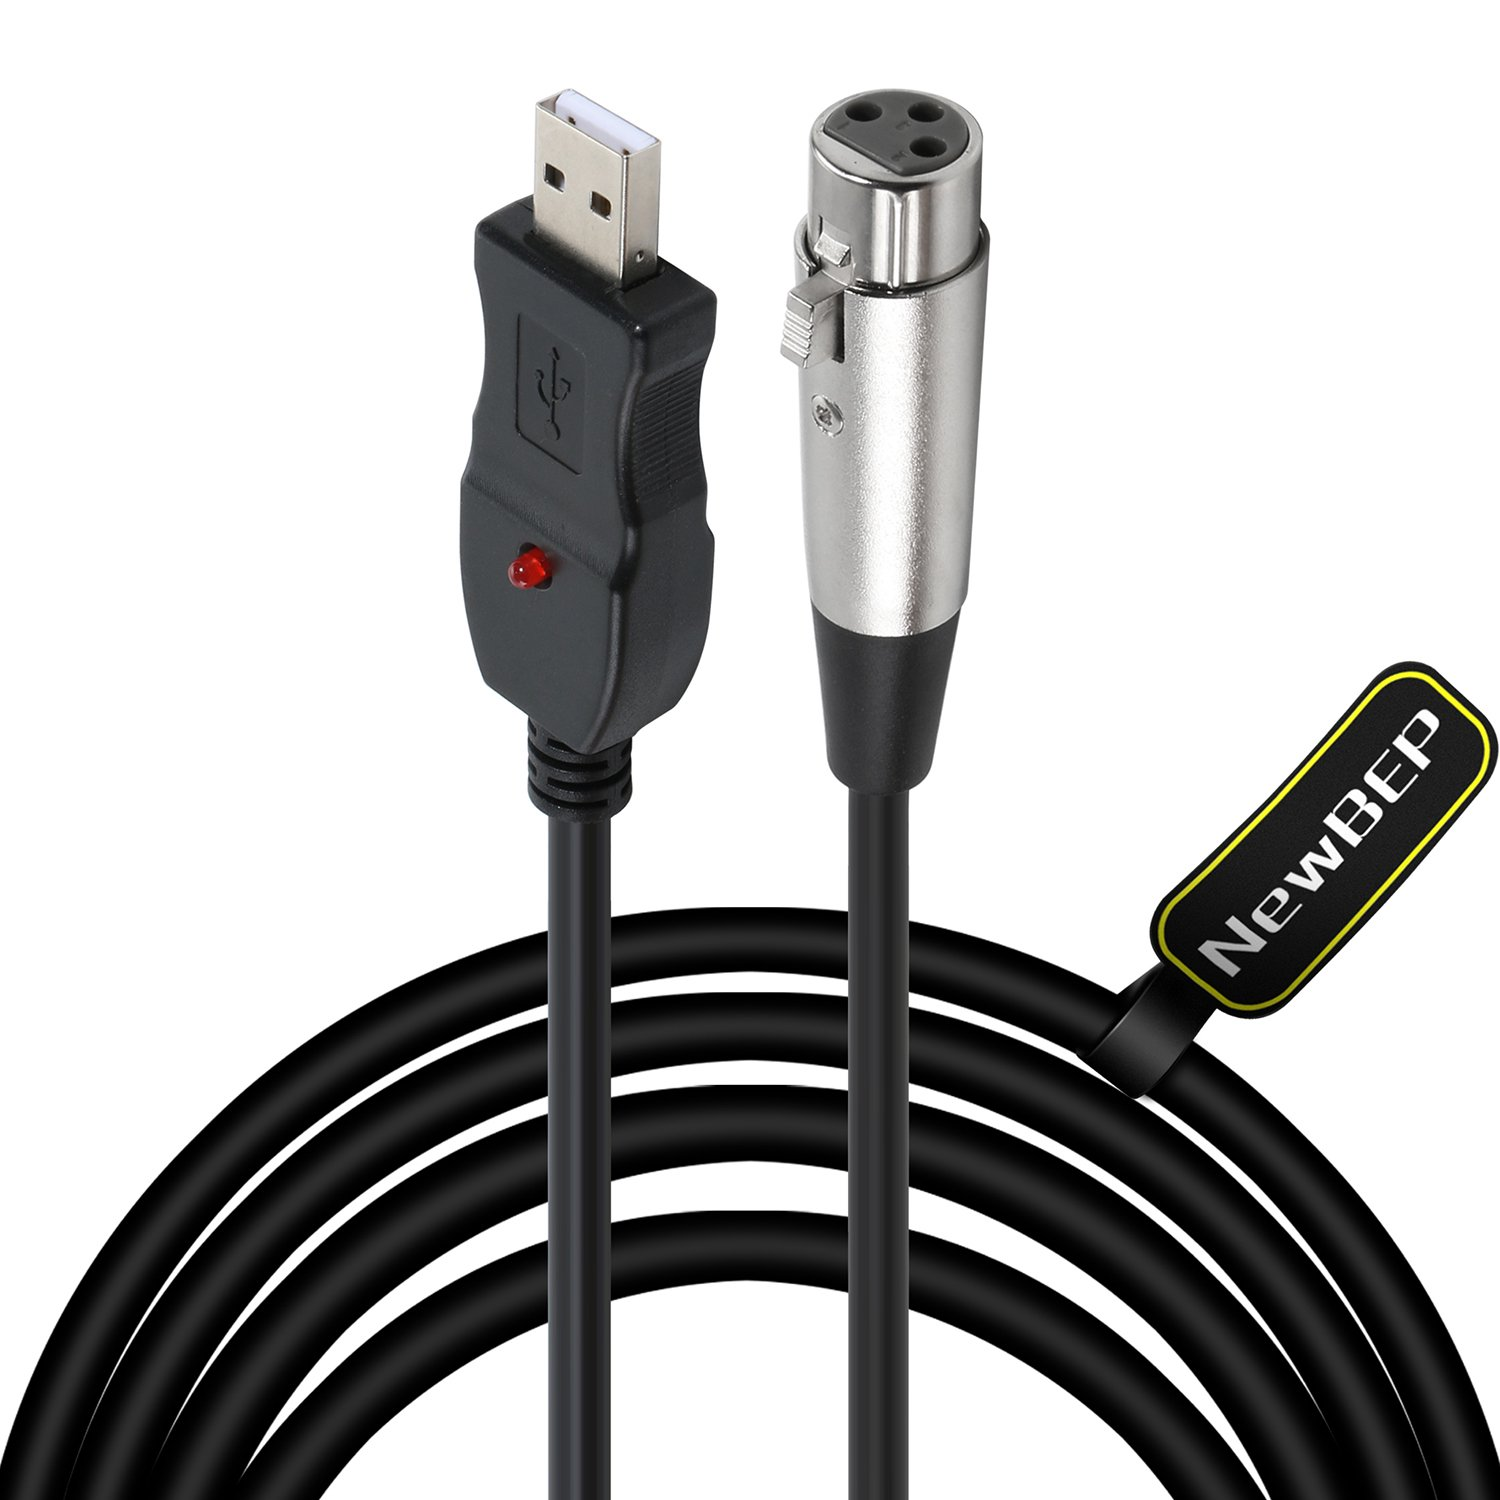 Usb Microphone Cable Newbep 3 Pin Male To Xlr Audio Plug Wiring Jack Color Female Mic Link Converter Studio Connector Cords Adapter For Microphones Or